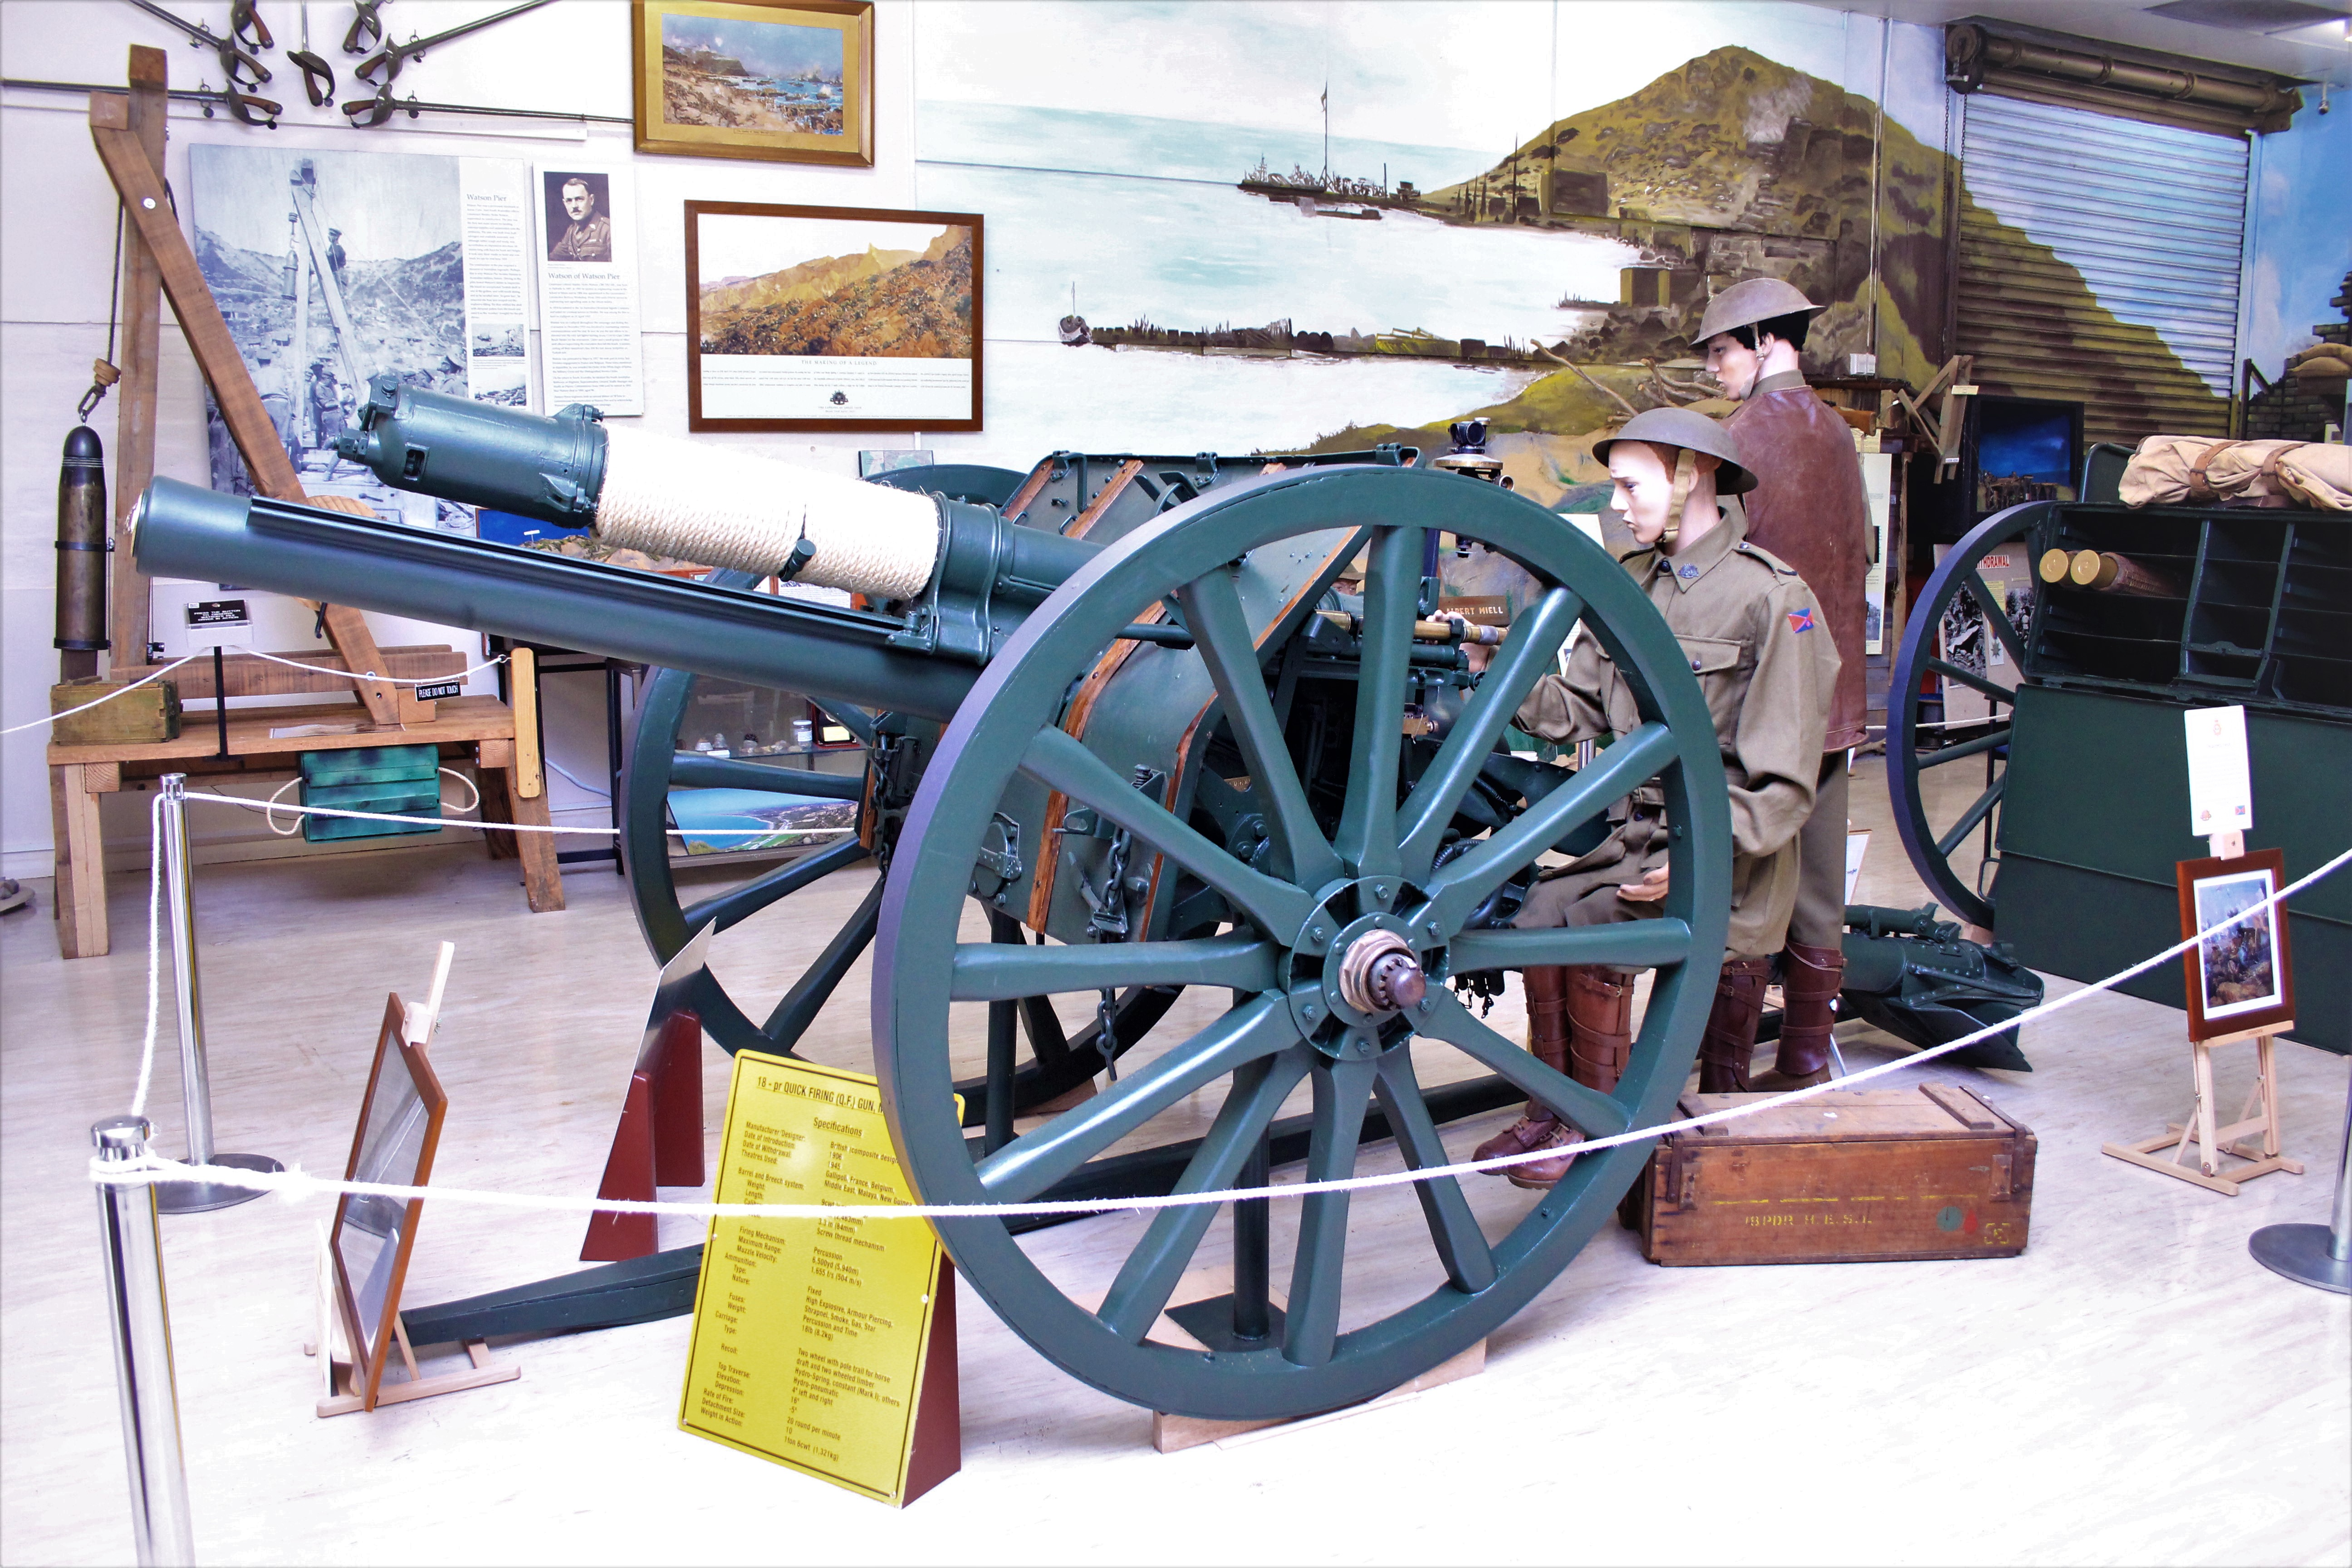 18 pounder gun used in WWI & WWII